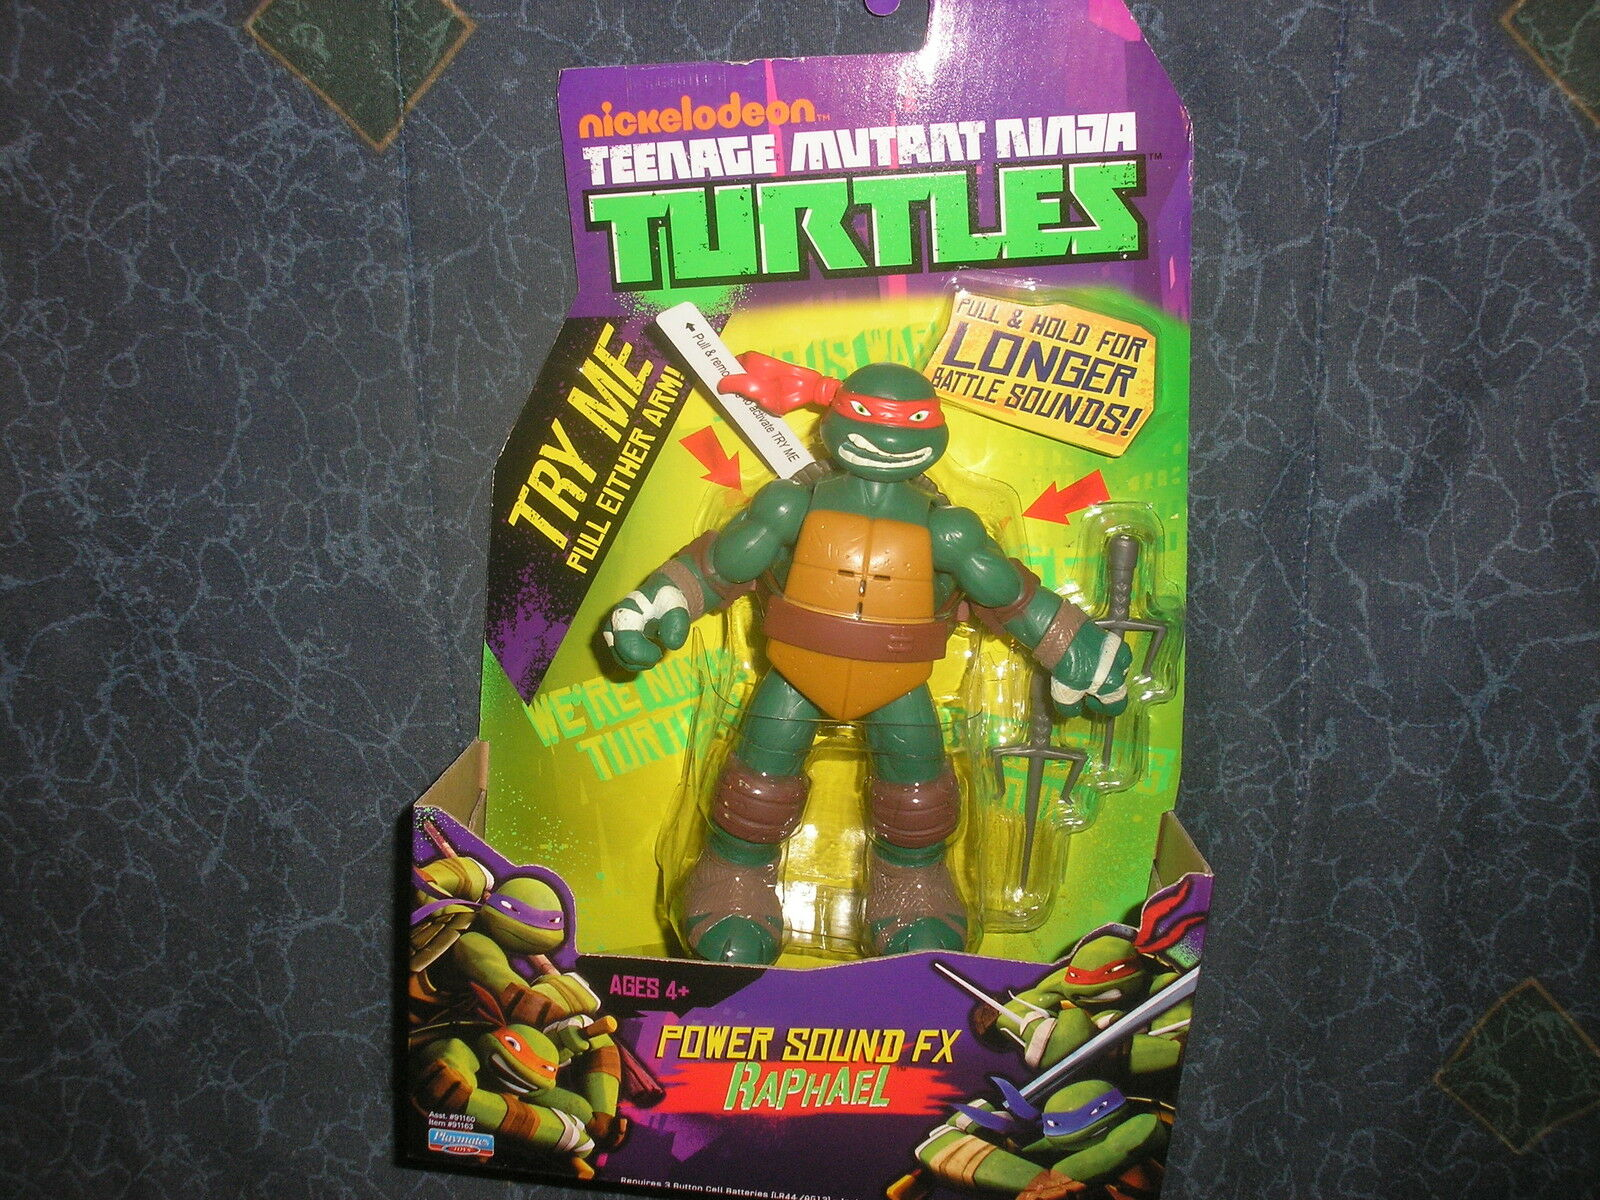 New Teenage Mutant Ninja Turtles Power Sound FX Raphael